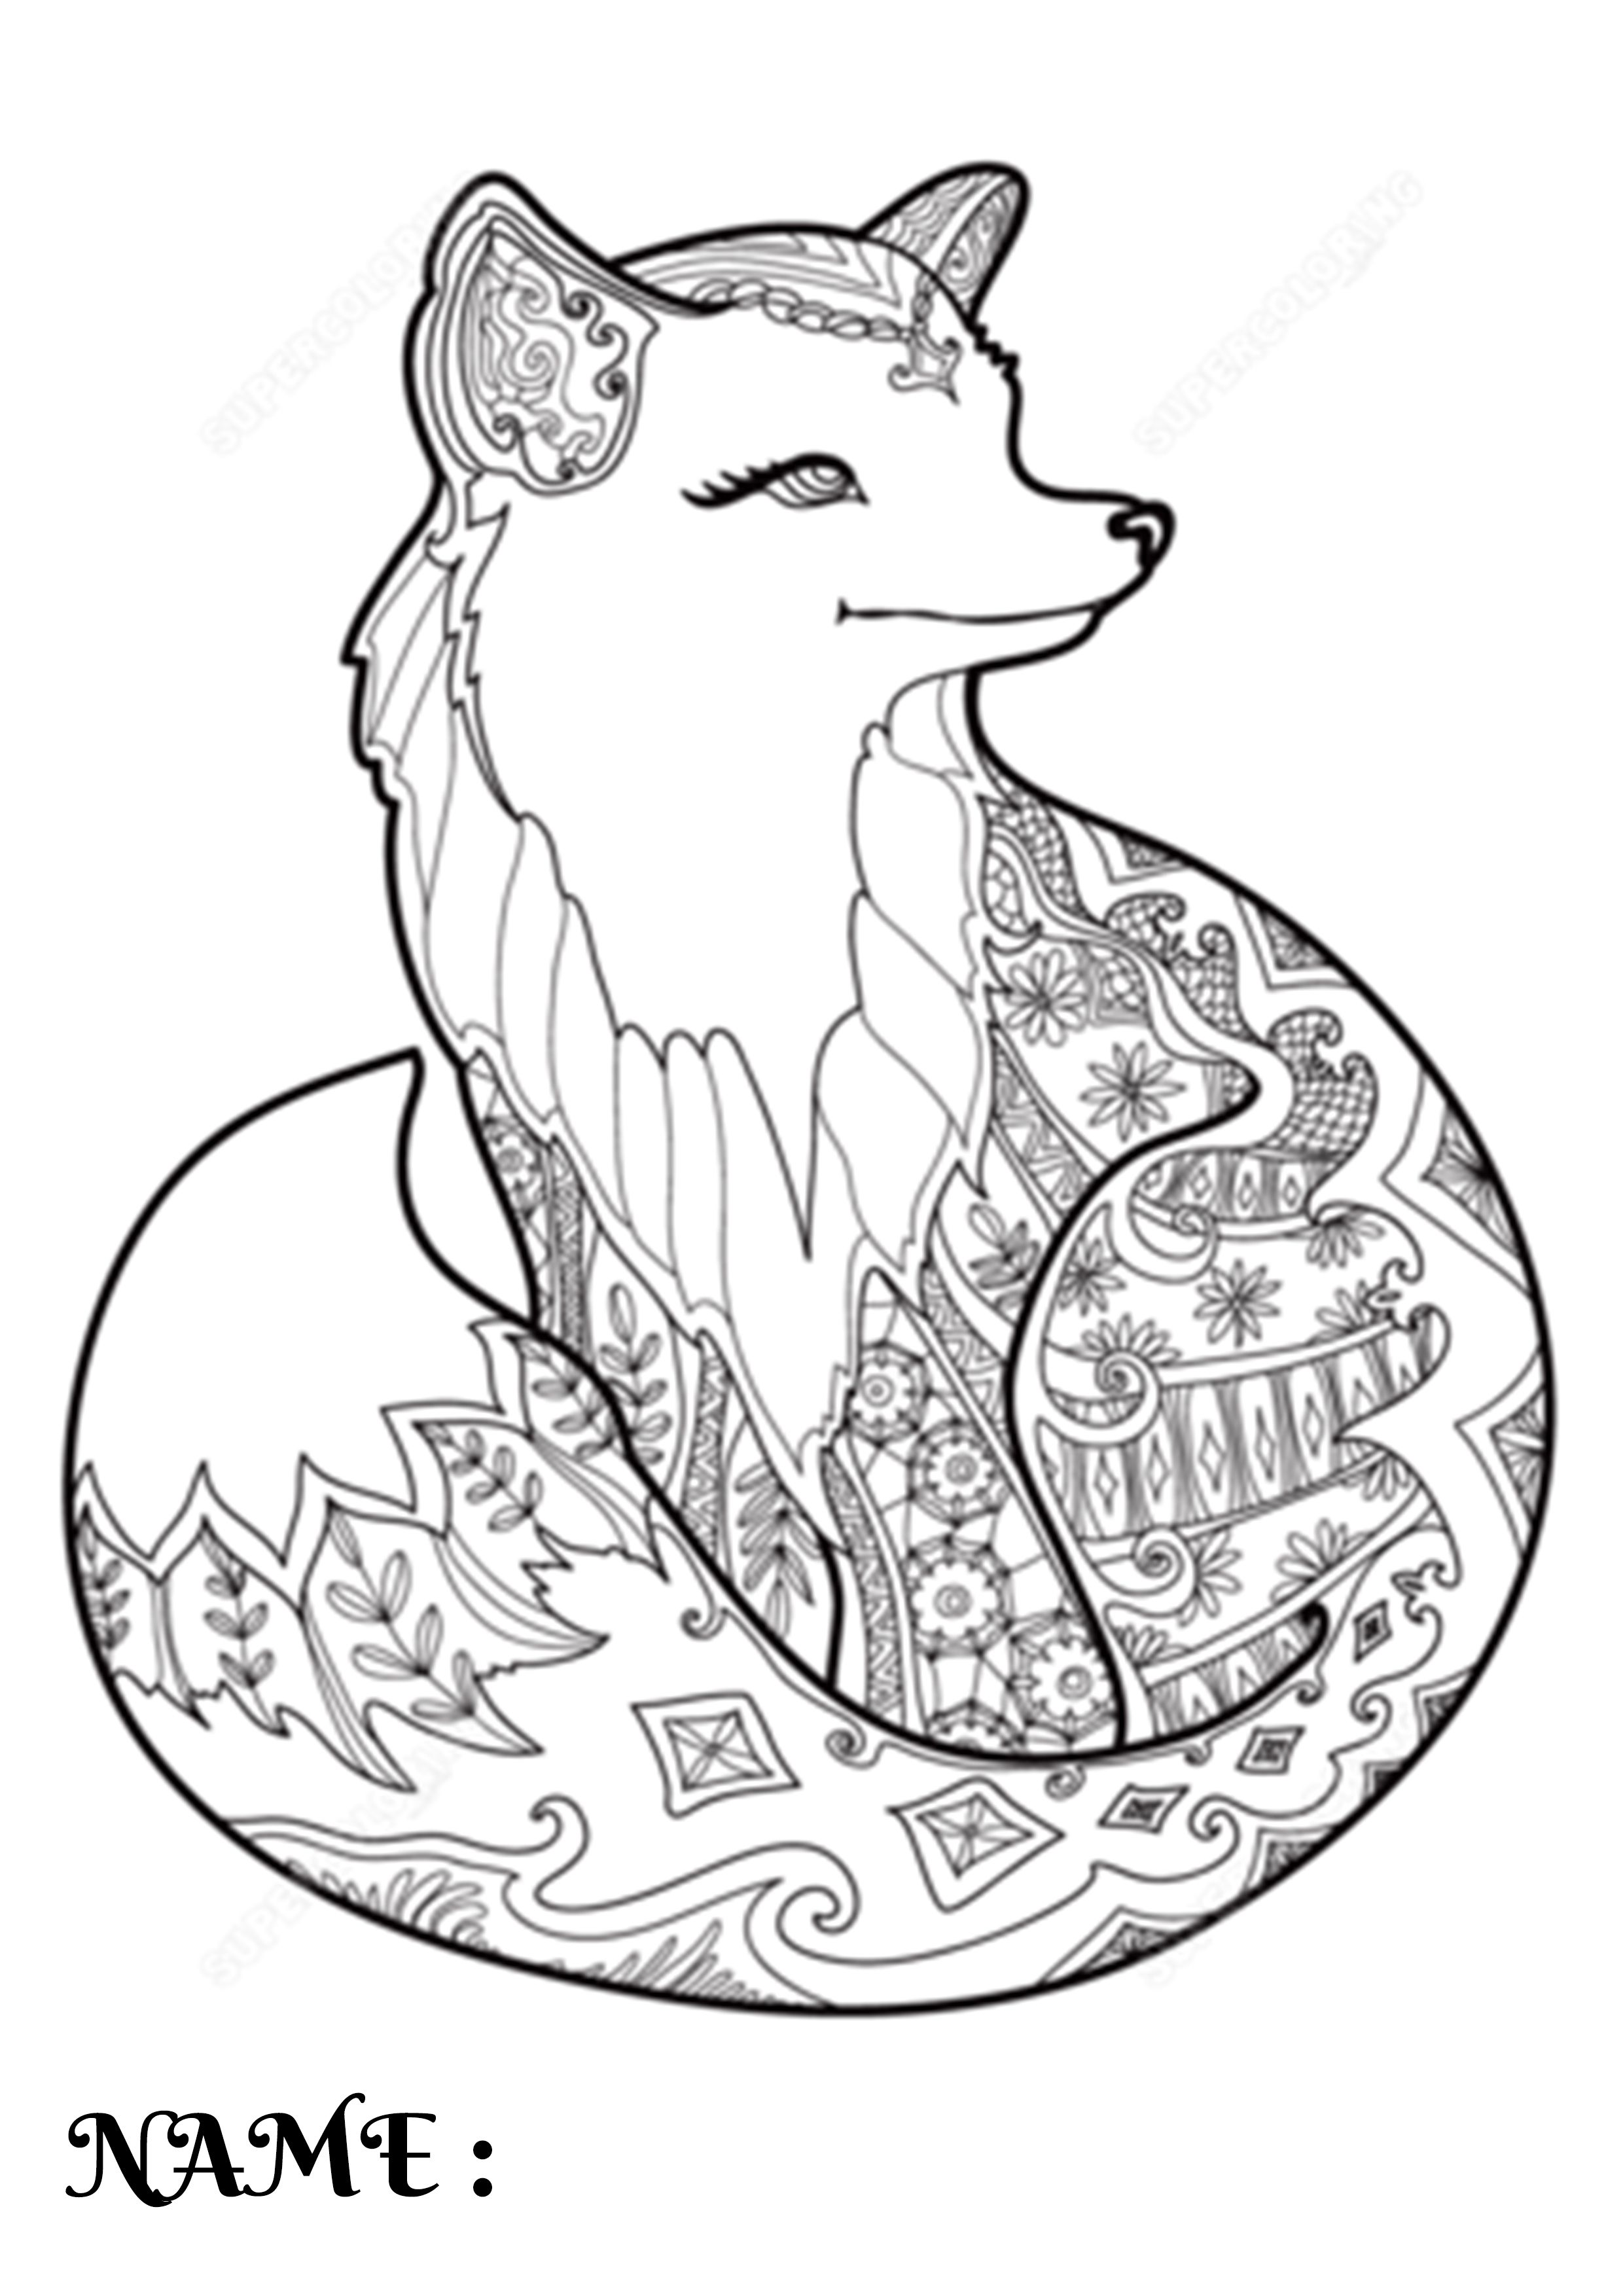 Coloring Page Fox Fox Animal Coloring Pages Fox Coloring Page Animal Coloring Pages Mandala Coloring Pages